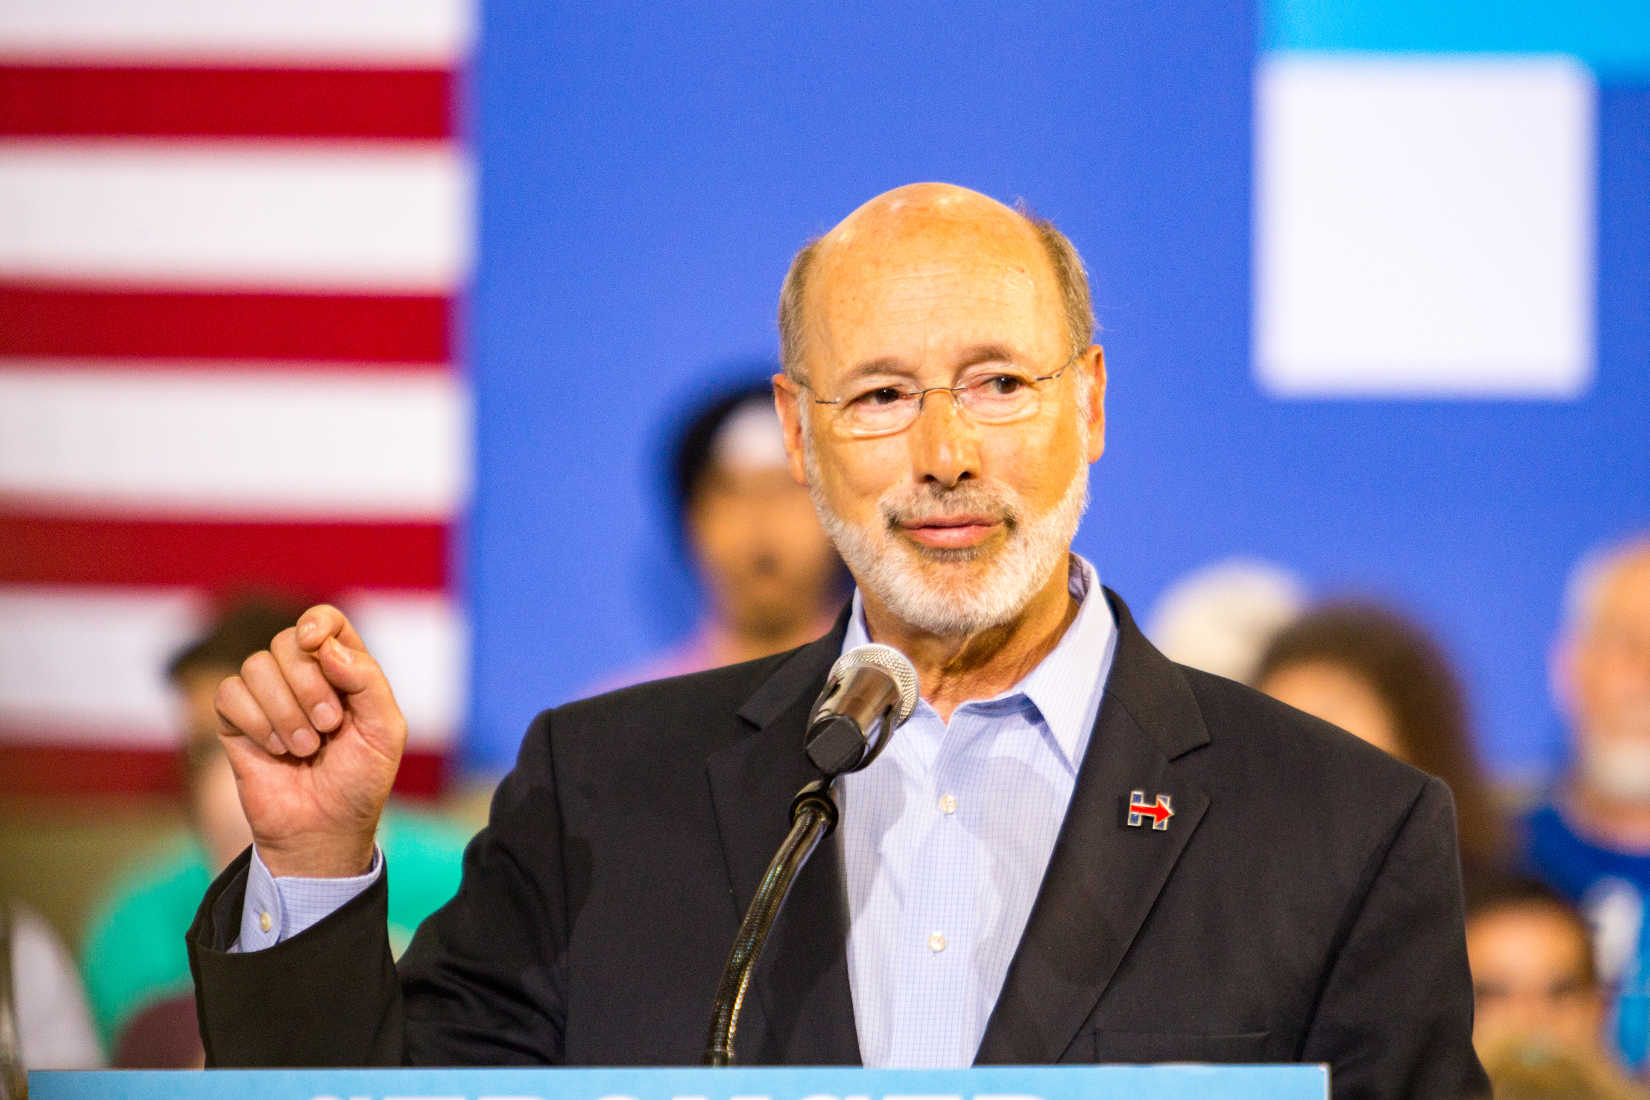 PA Gov. Ramps Up Anti-Gun Efforts, Appoints 2A Critic to Lead 'Gun Violence Prevention' Team